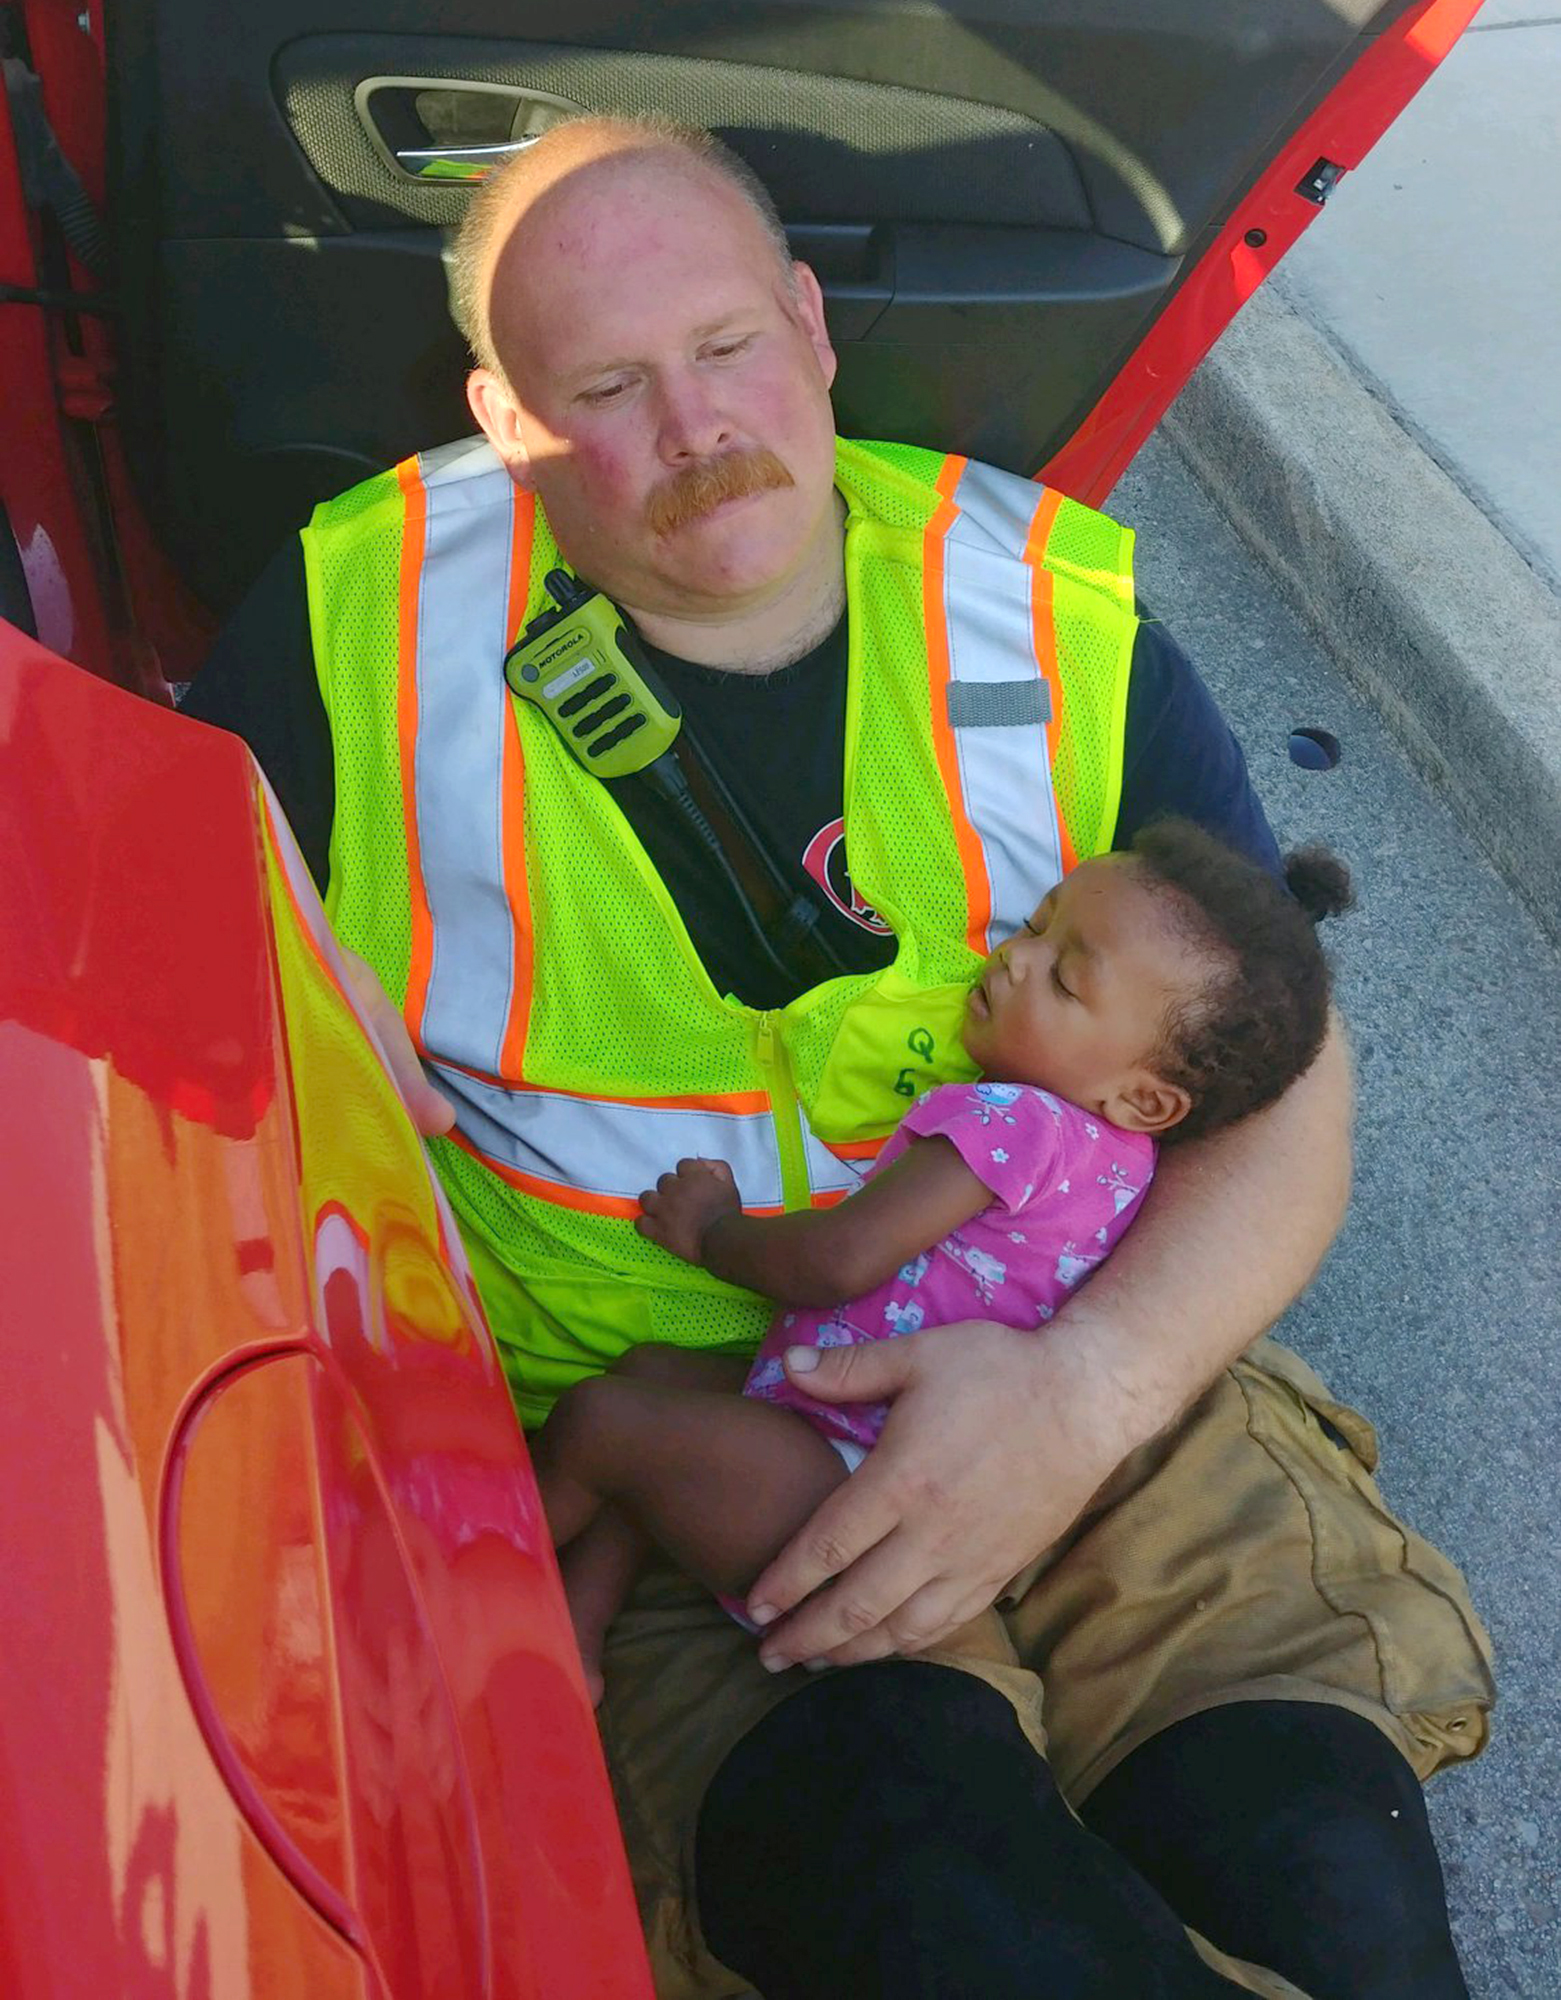 Firefighter Comforts Child After Car Accident in Touching Viral Photo: 'This Is Why I Do My Job'